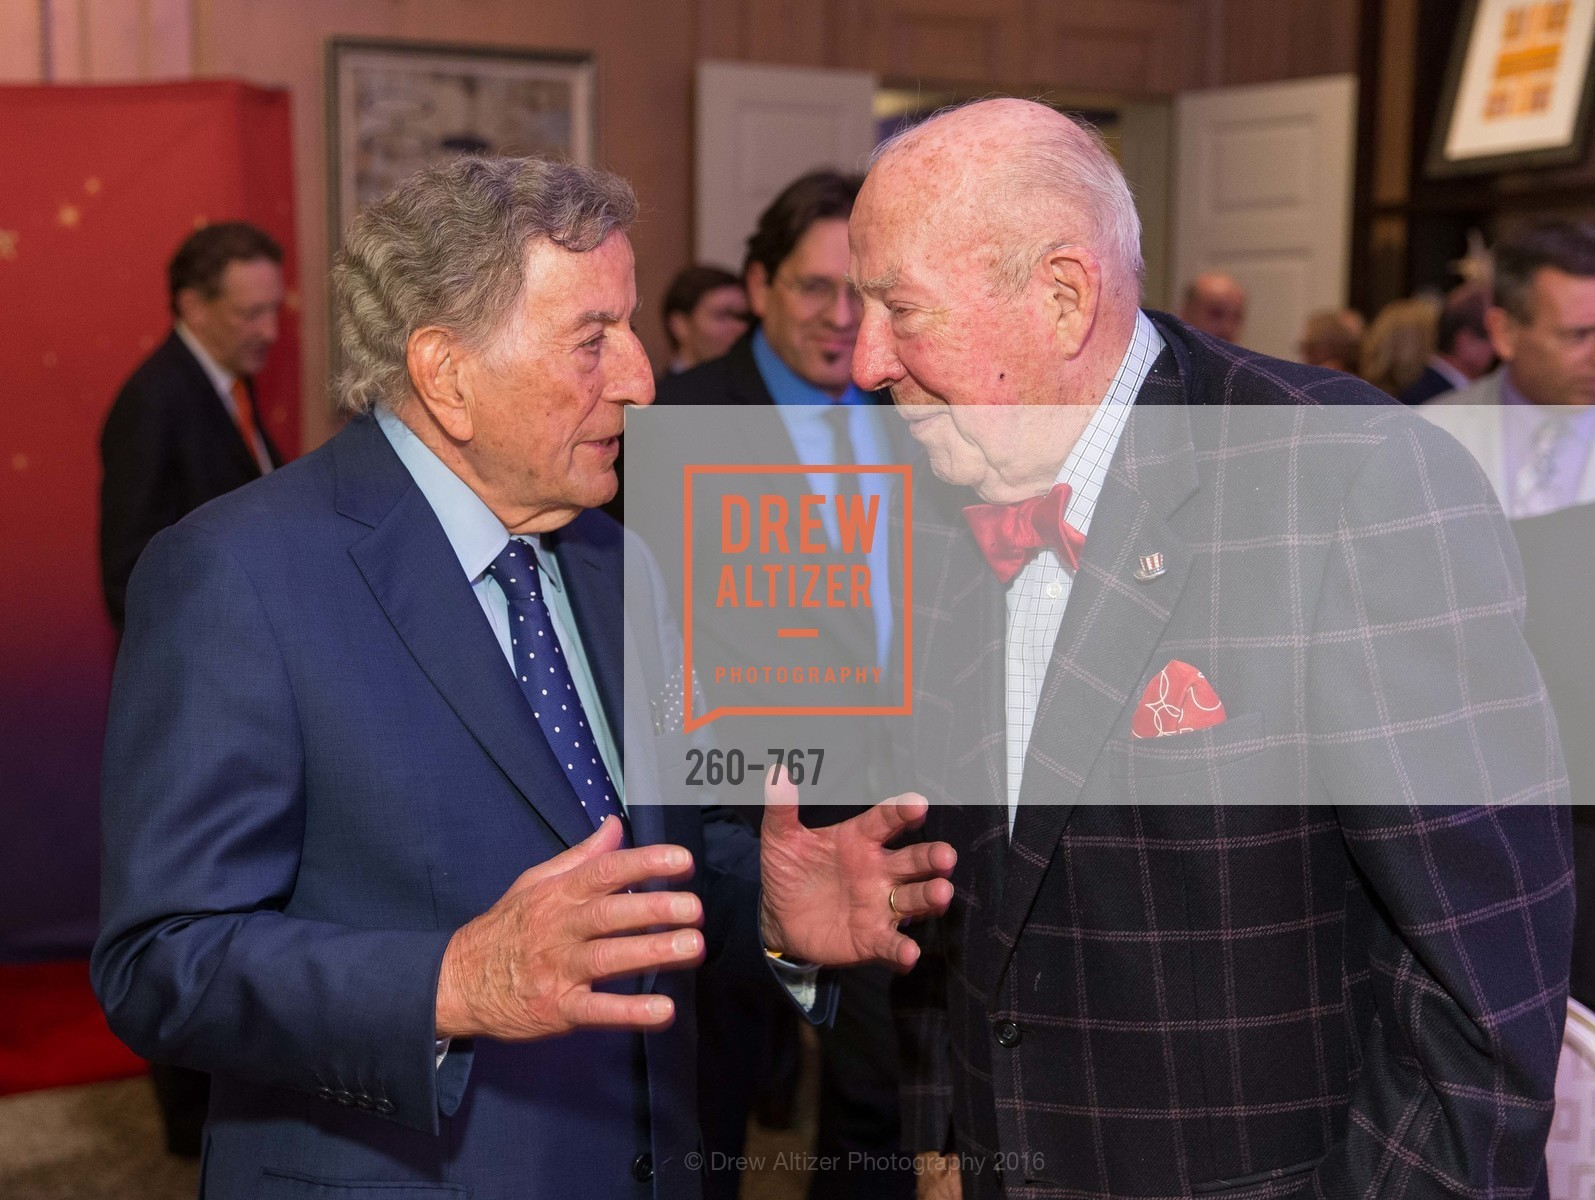 Tony Bennett, George Shultz, A Special Reception with Tony Bennett, The Fairmont, San Francisco, The Penthouse Suite, January 26th, 2016,Drew Altizer, Drew Altizer Photography, full-service agency, private events, San Francisco photographer, photographer california